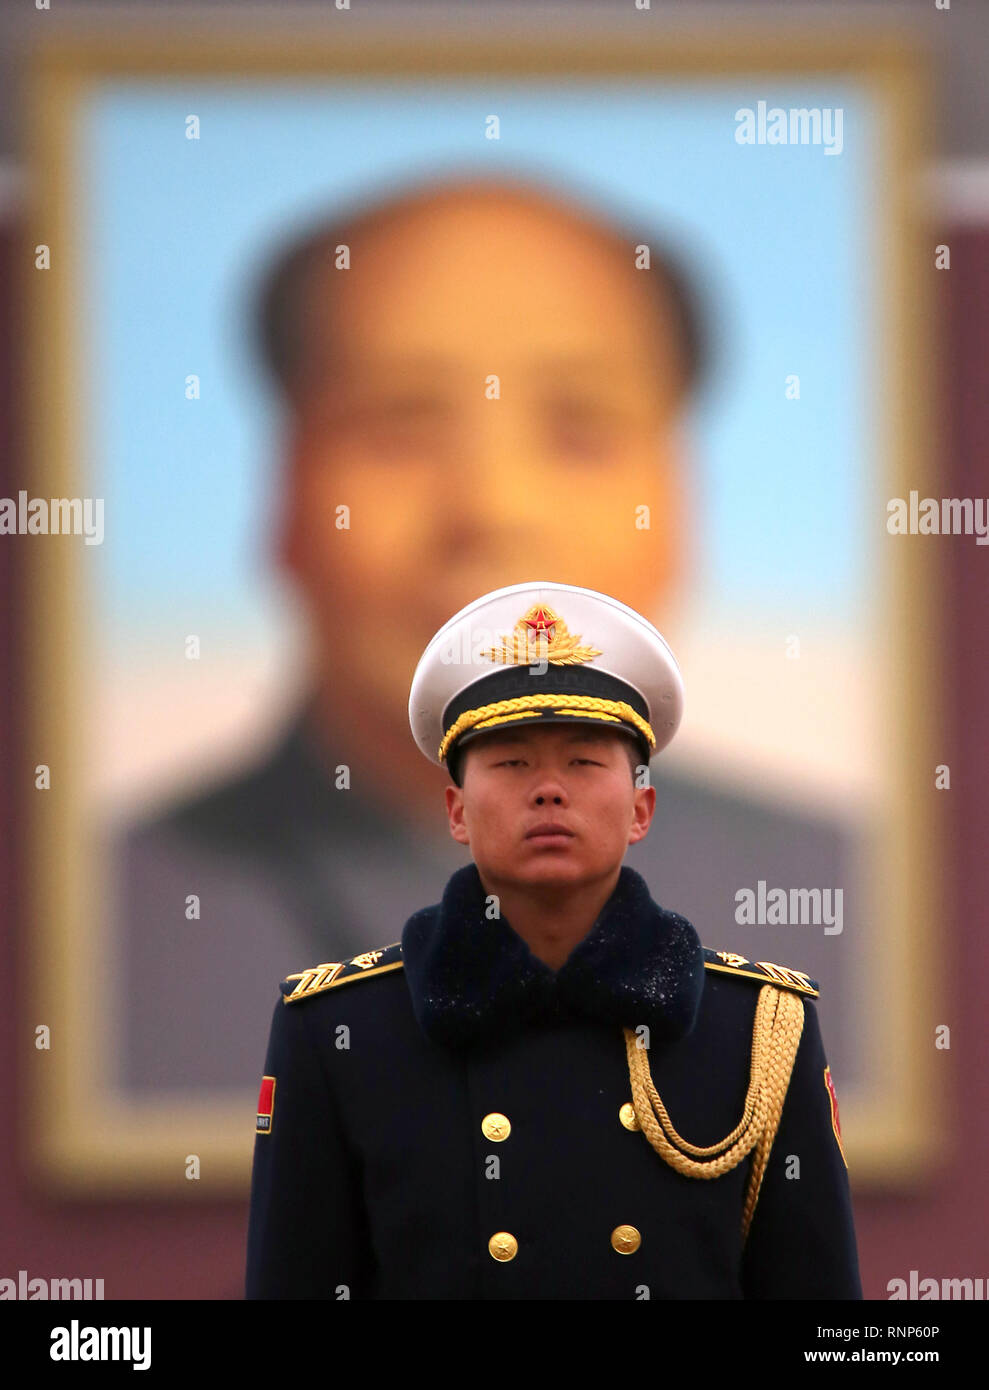 Beijing, China. 17th Mar, 2018. A Chinese soldier stands guard on Tiananmen Square in front of large portrait of former helmsman Mao Zedong as the National People's Congress continues in the Great Hall of the People in Beijing on March 17, 2018. Chinese President Xi Jinping has secured another five years as China's leader. Credit: Todd Lee/ZUMA Wire/ZUMAPRESS.com/Alamy Live News - Stock Image